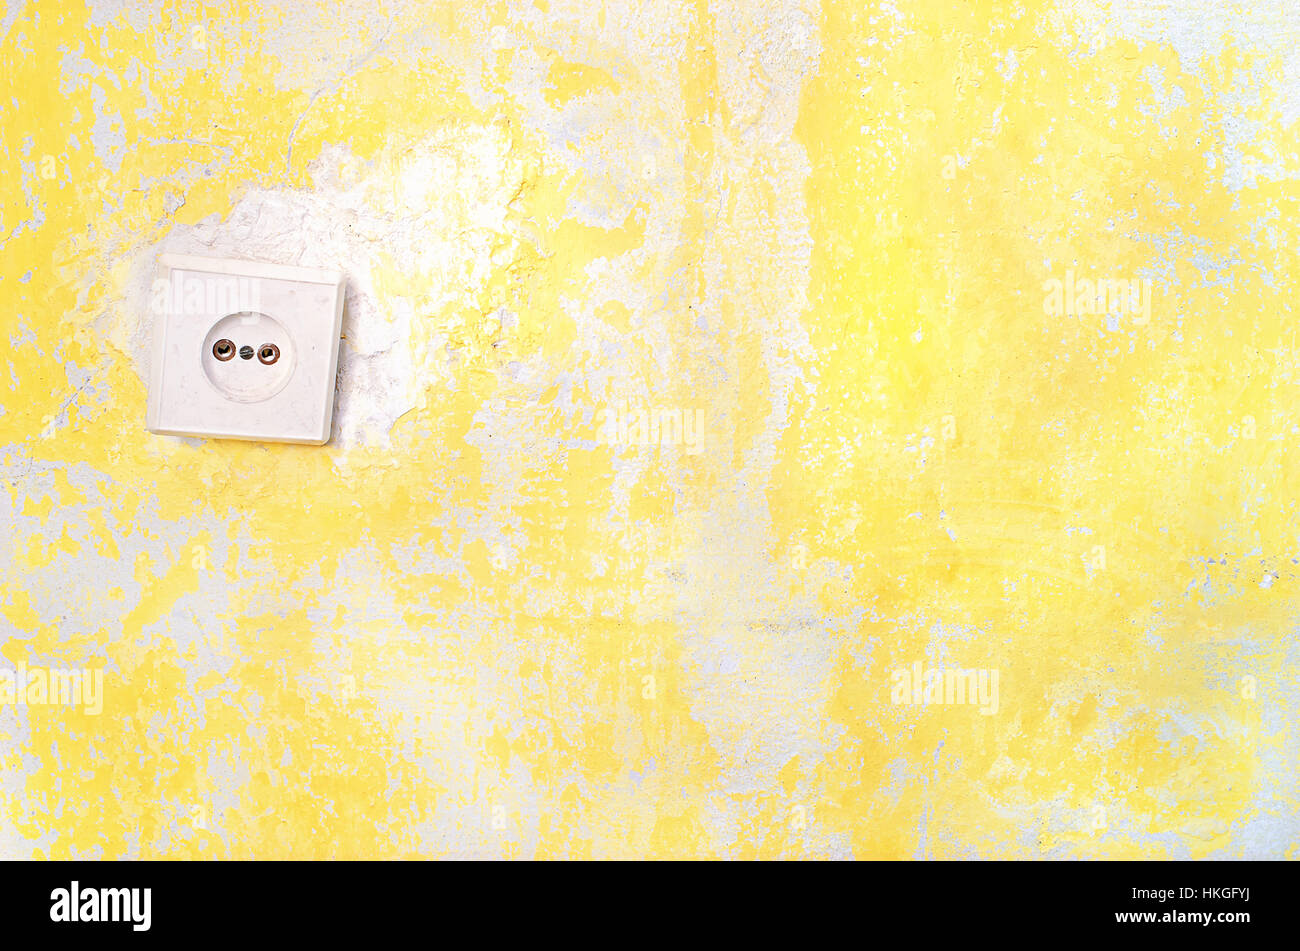 Wall socket on the yellow old plastered wall whith copyspace. Old electrical outlet on a decrepit wall. Fragment Stock Photo